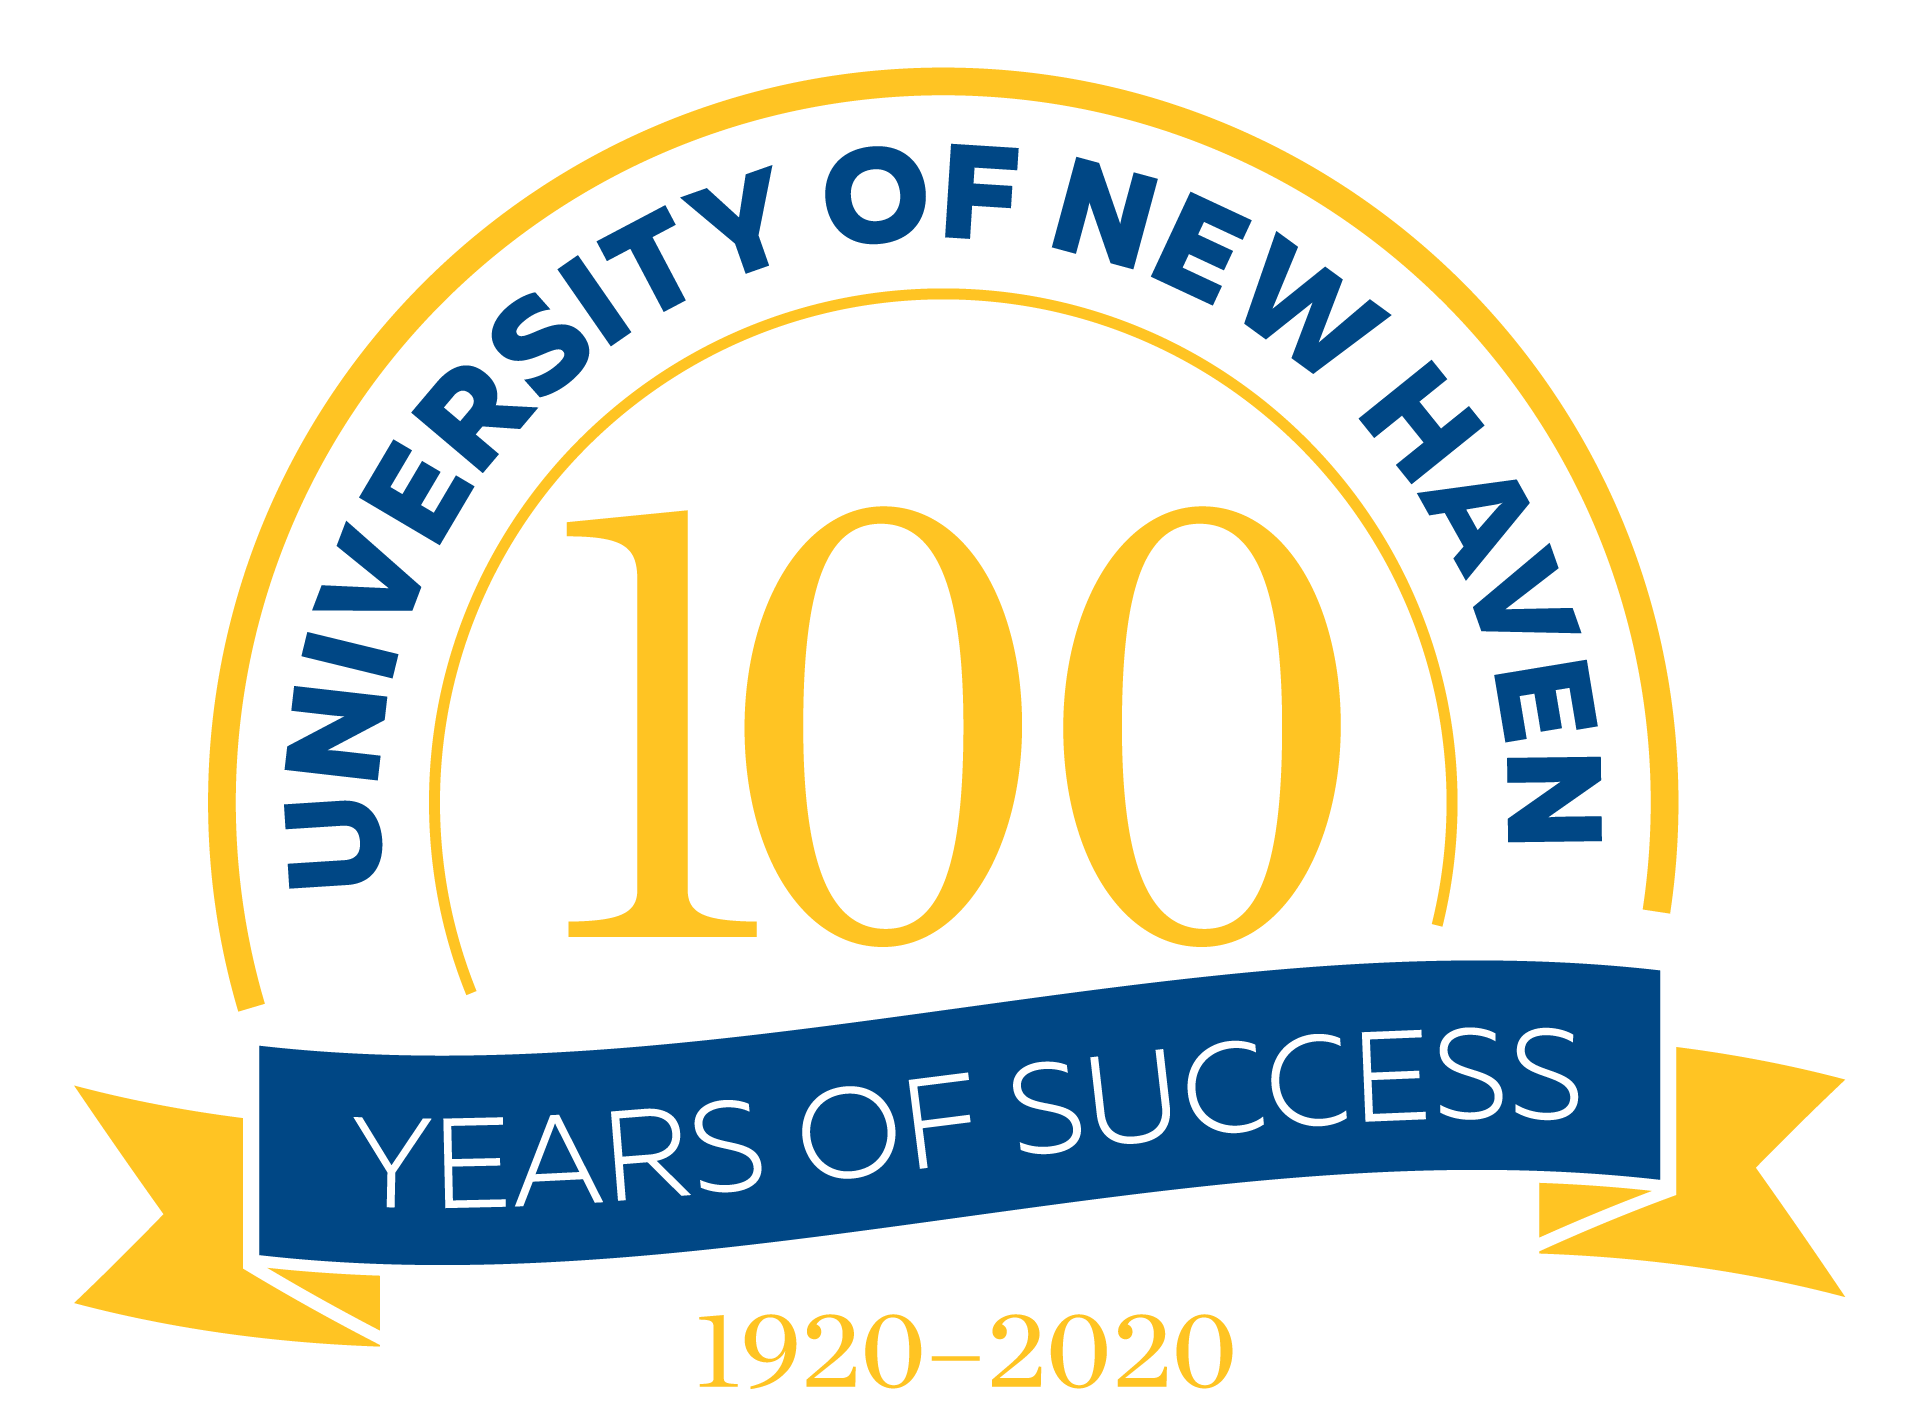 Events - University Of New Haven With Regard To University Of New Haven Ct Calender